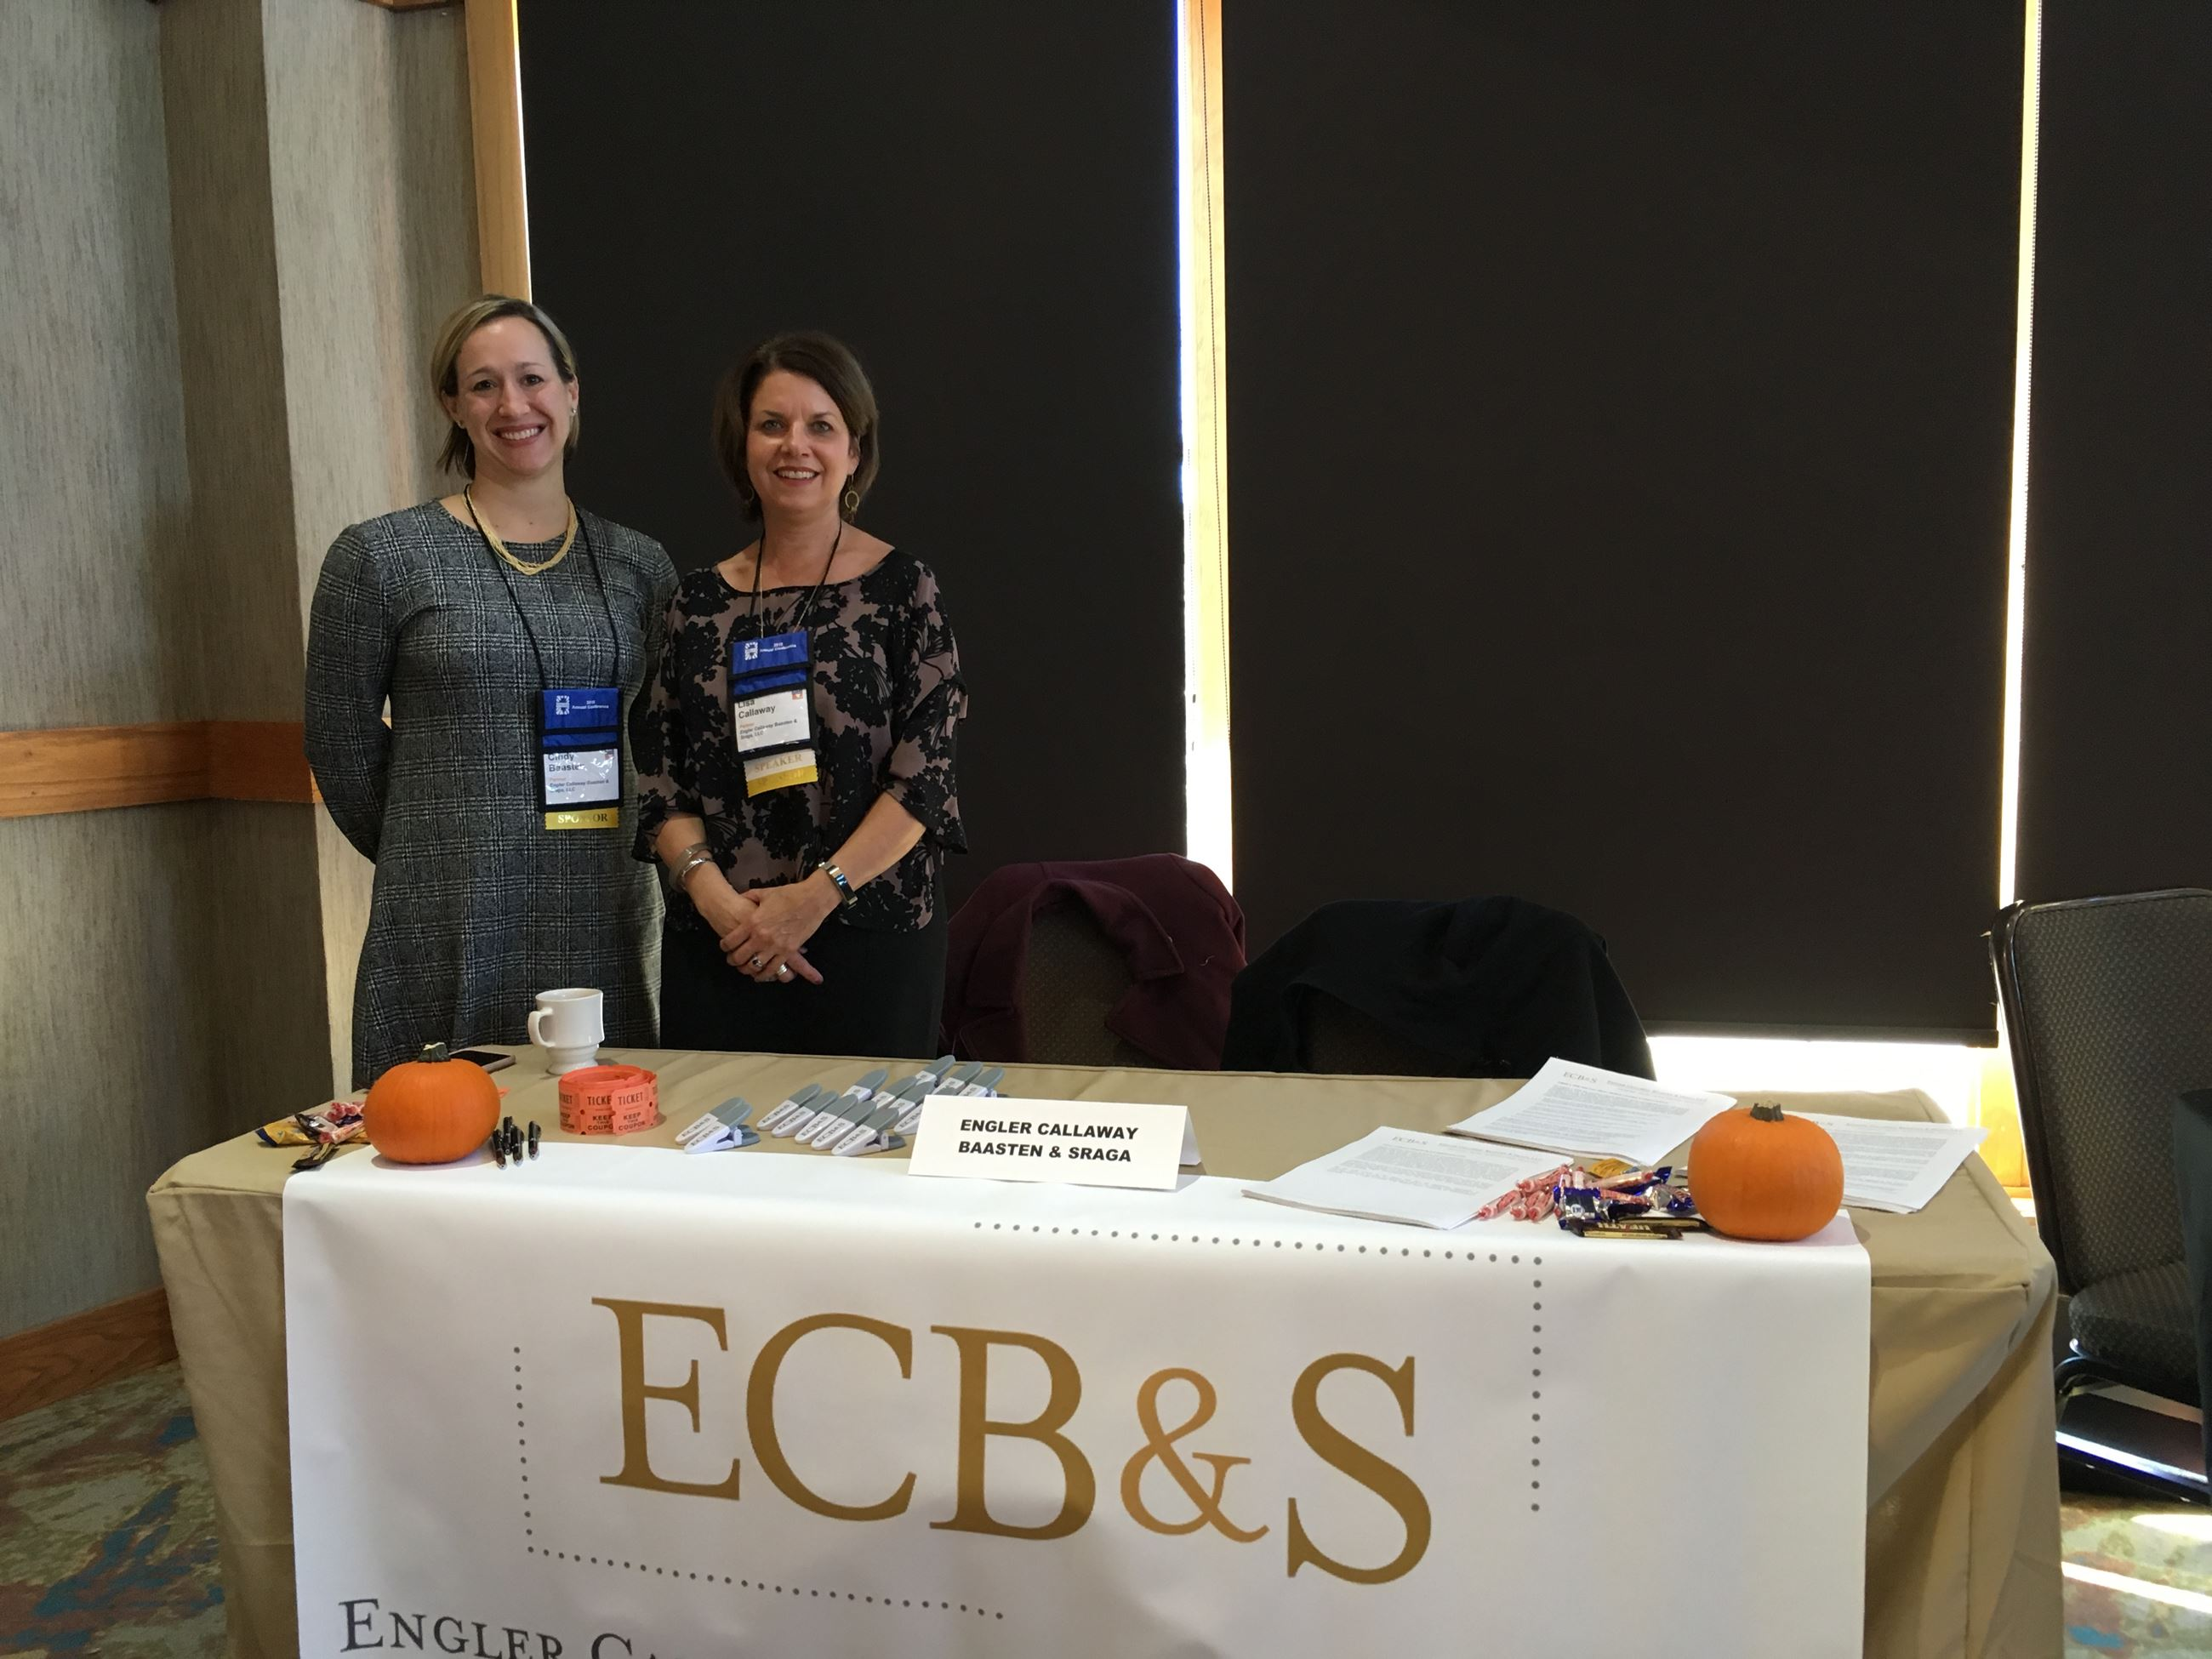 2 women standing next to a table with ECB&S materials